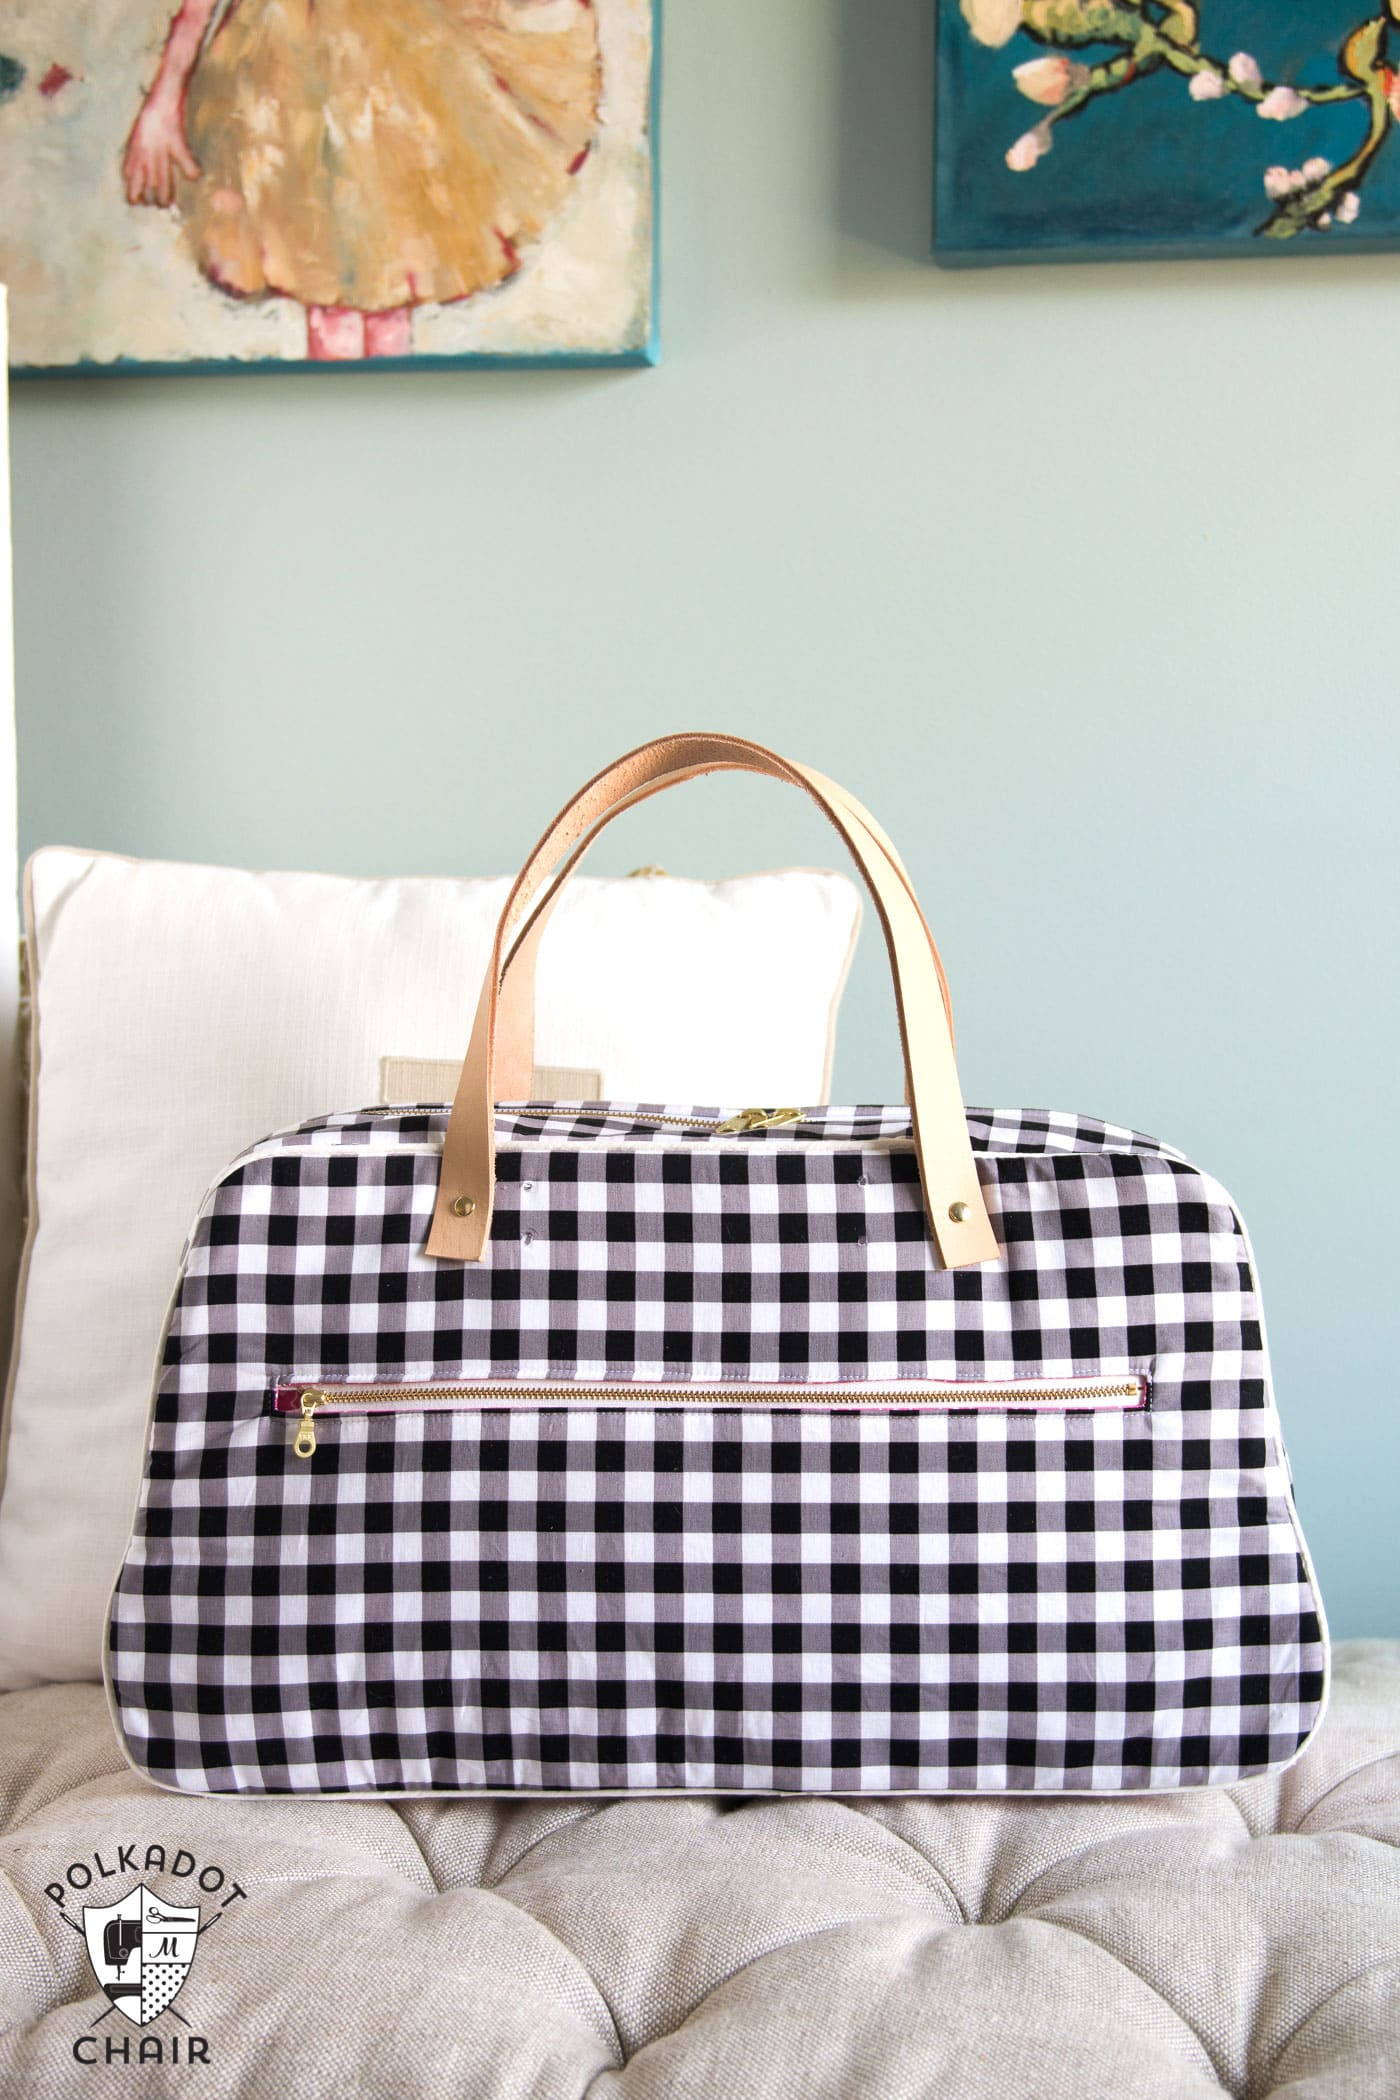 Refreshed Retro Travel Bag Sewing Pattern - The Polka Dot Chair